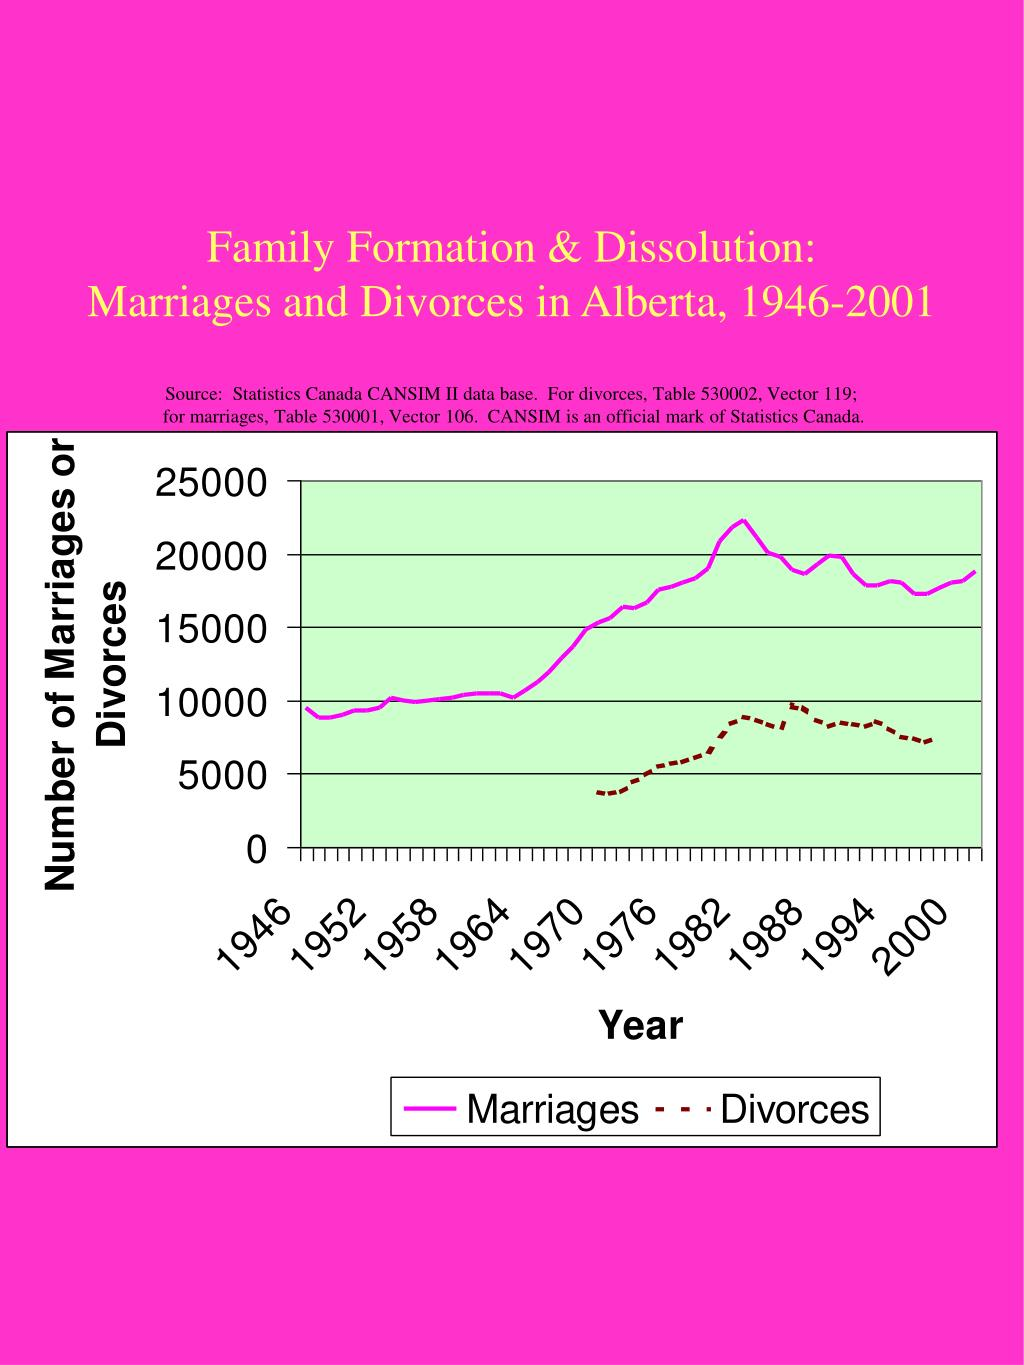 Family Formation & Dissolution: